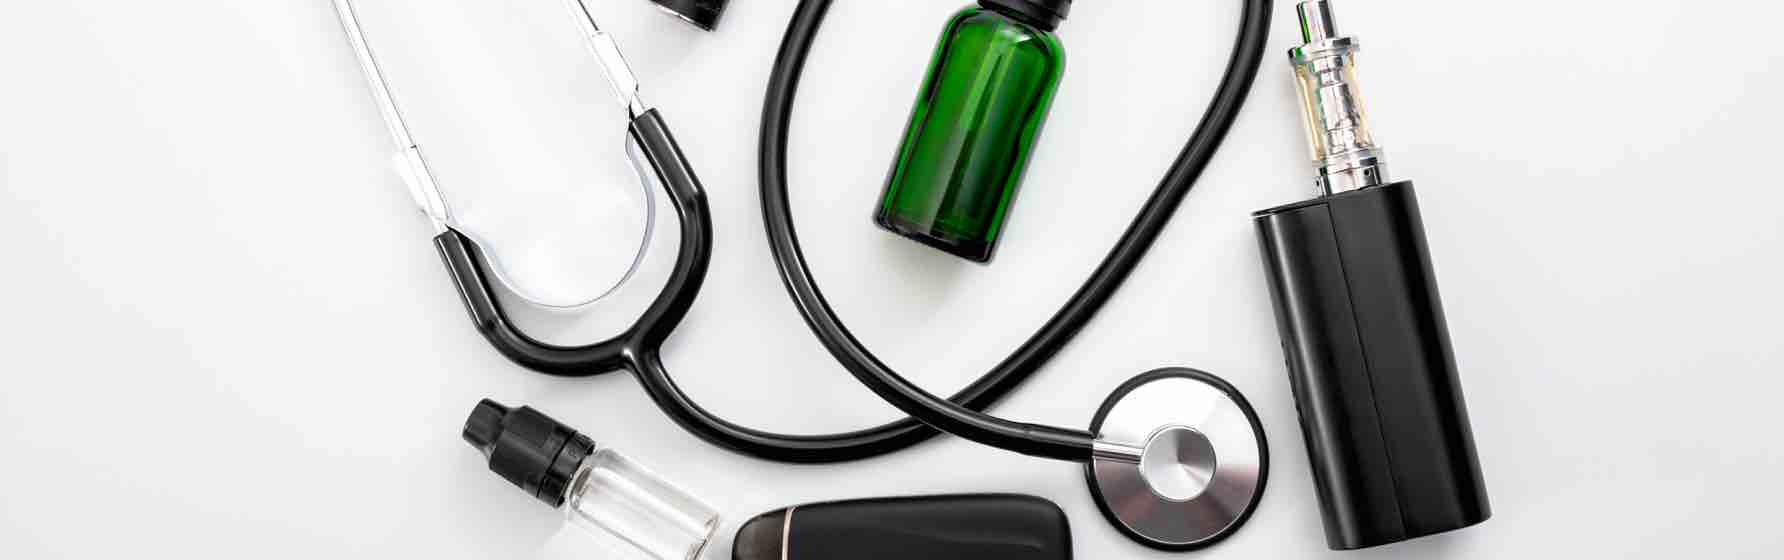 Medical effects of vaping